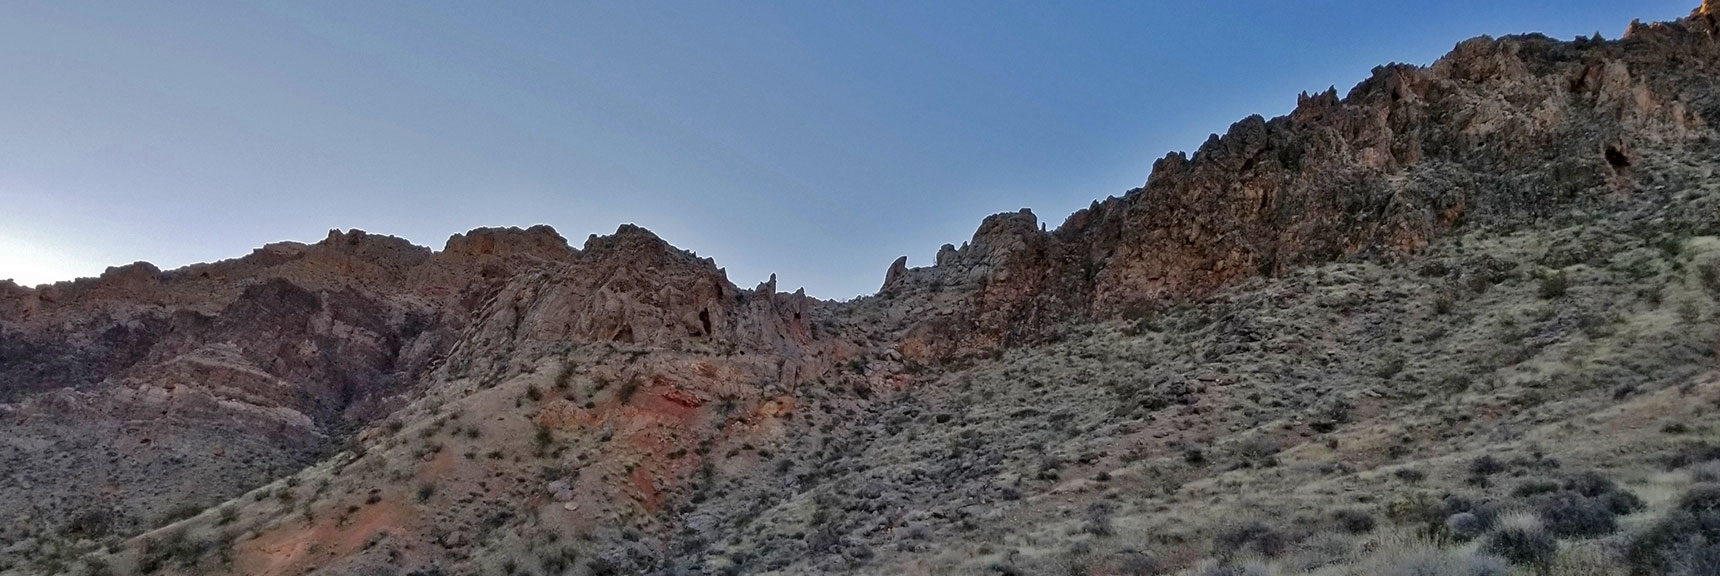 The Pass Above Old Arrowhead Trailhead, Entering Into the Muddy Mountains Wilderness, Nevada